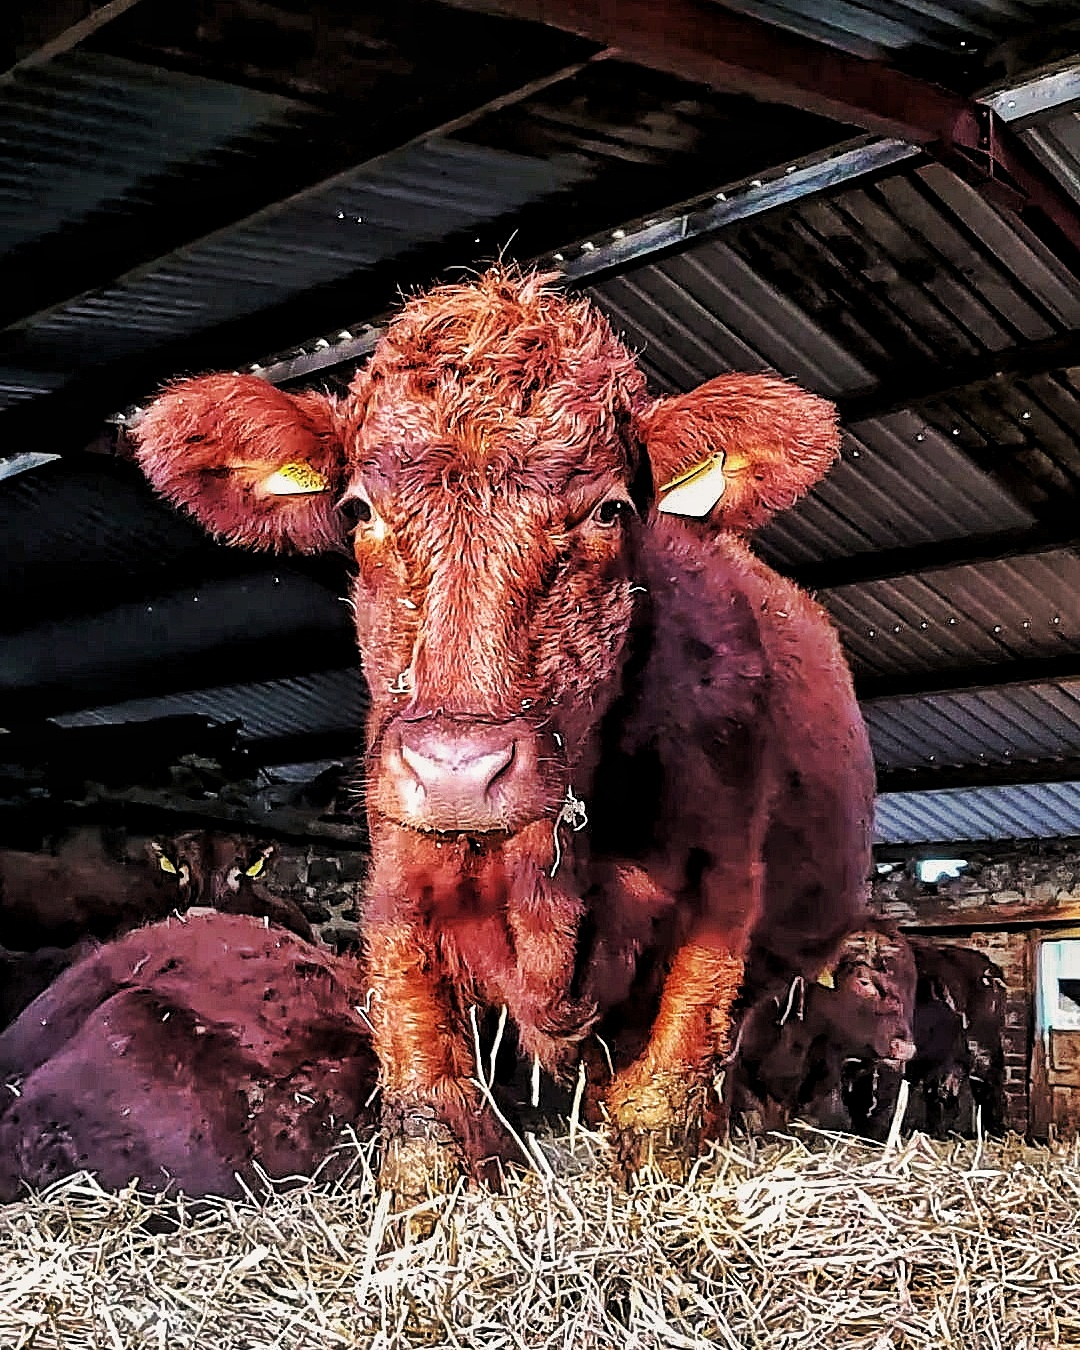 Very scruffy looking orange cow standing in a straw bedded shed.